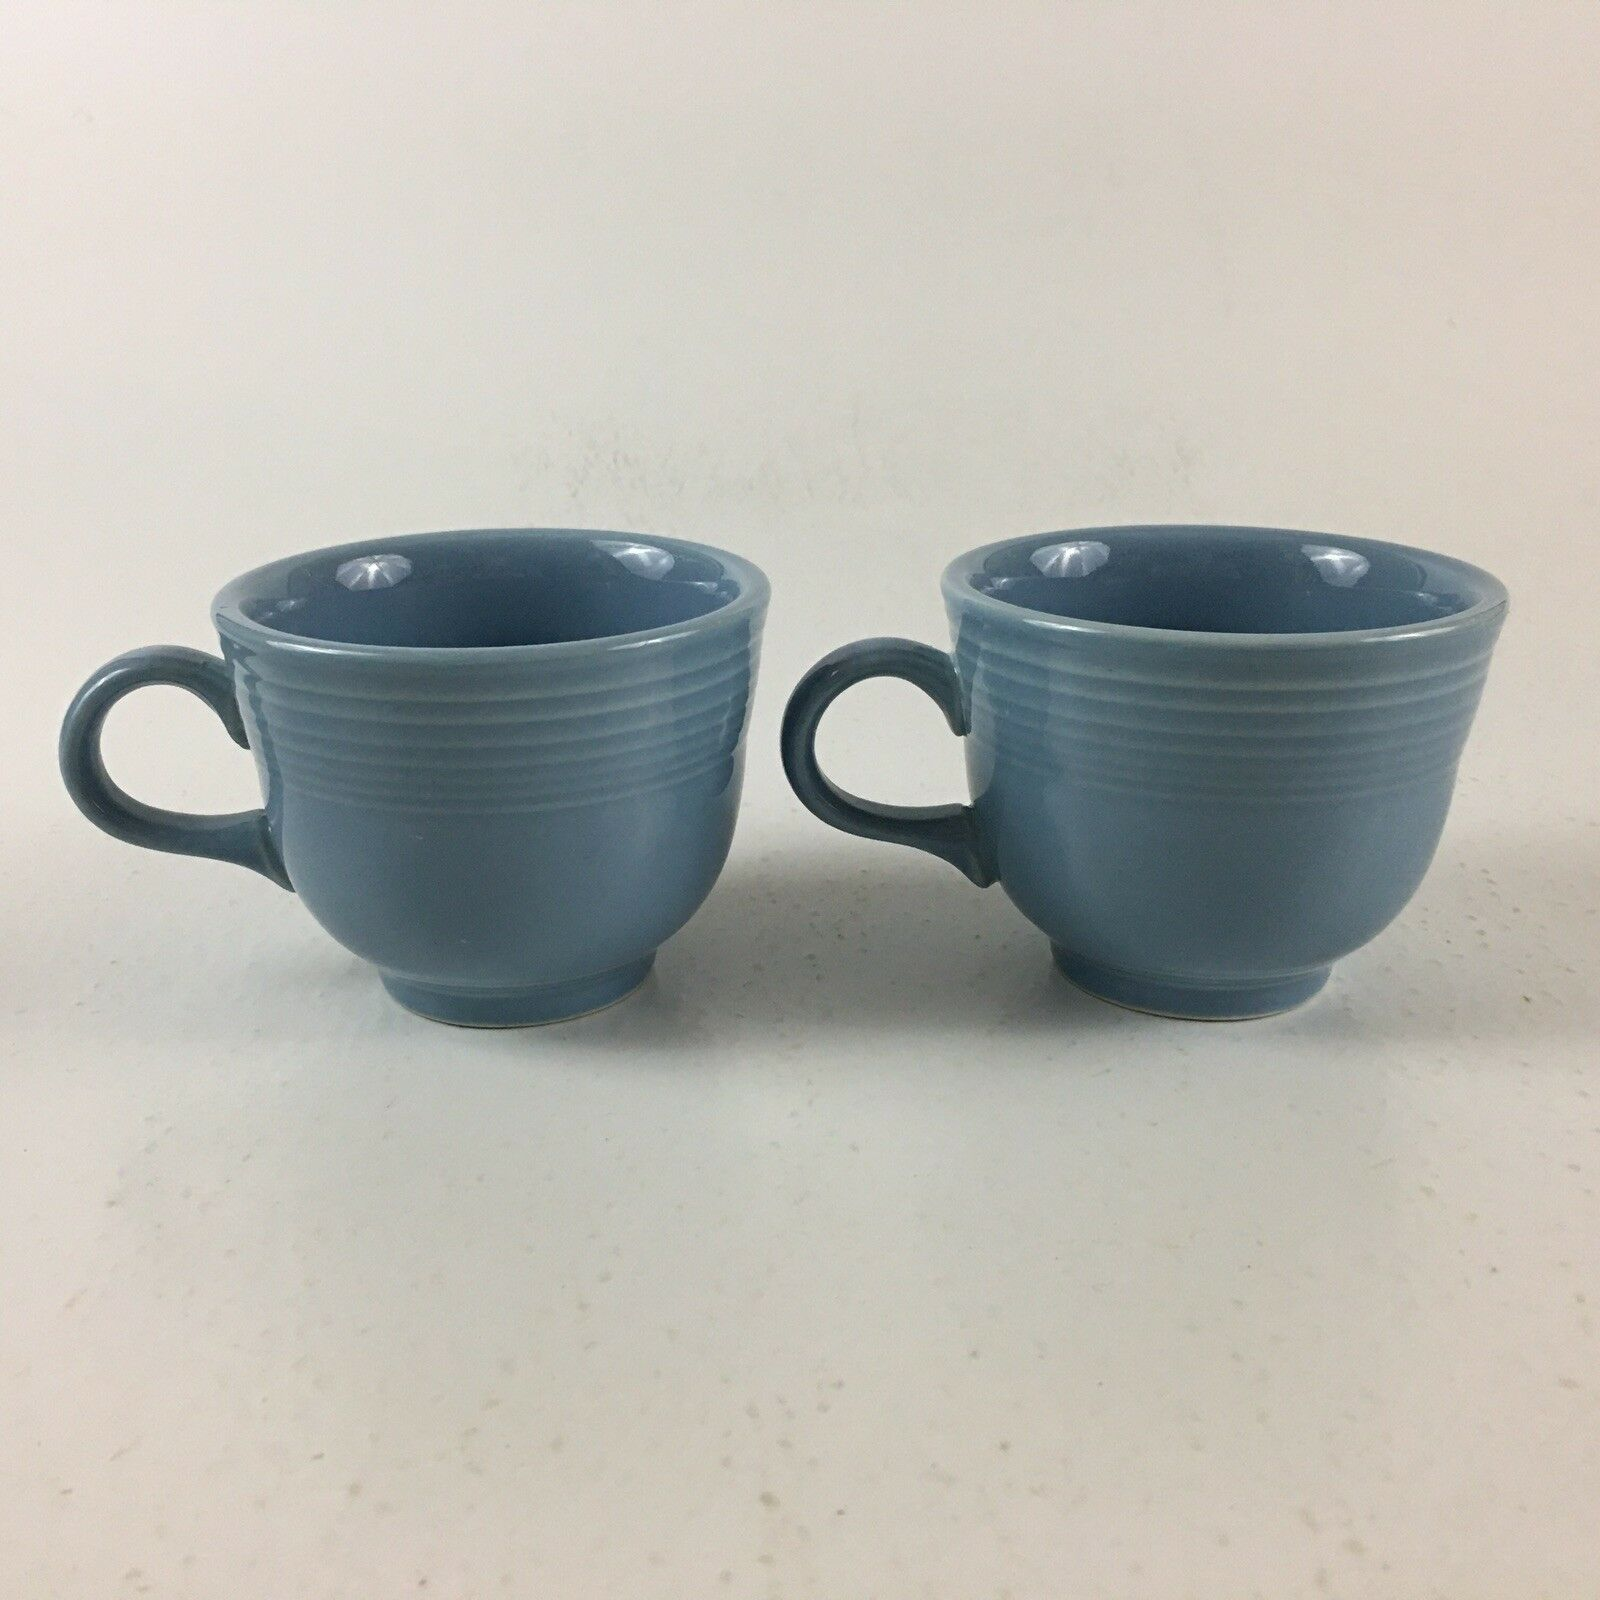 Fiestaware Homer Laughlin Periwinkle Blue Set Of 2 Coffee Cups USA